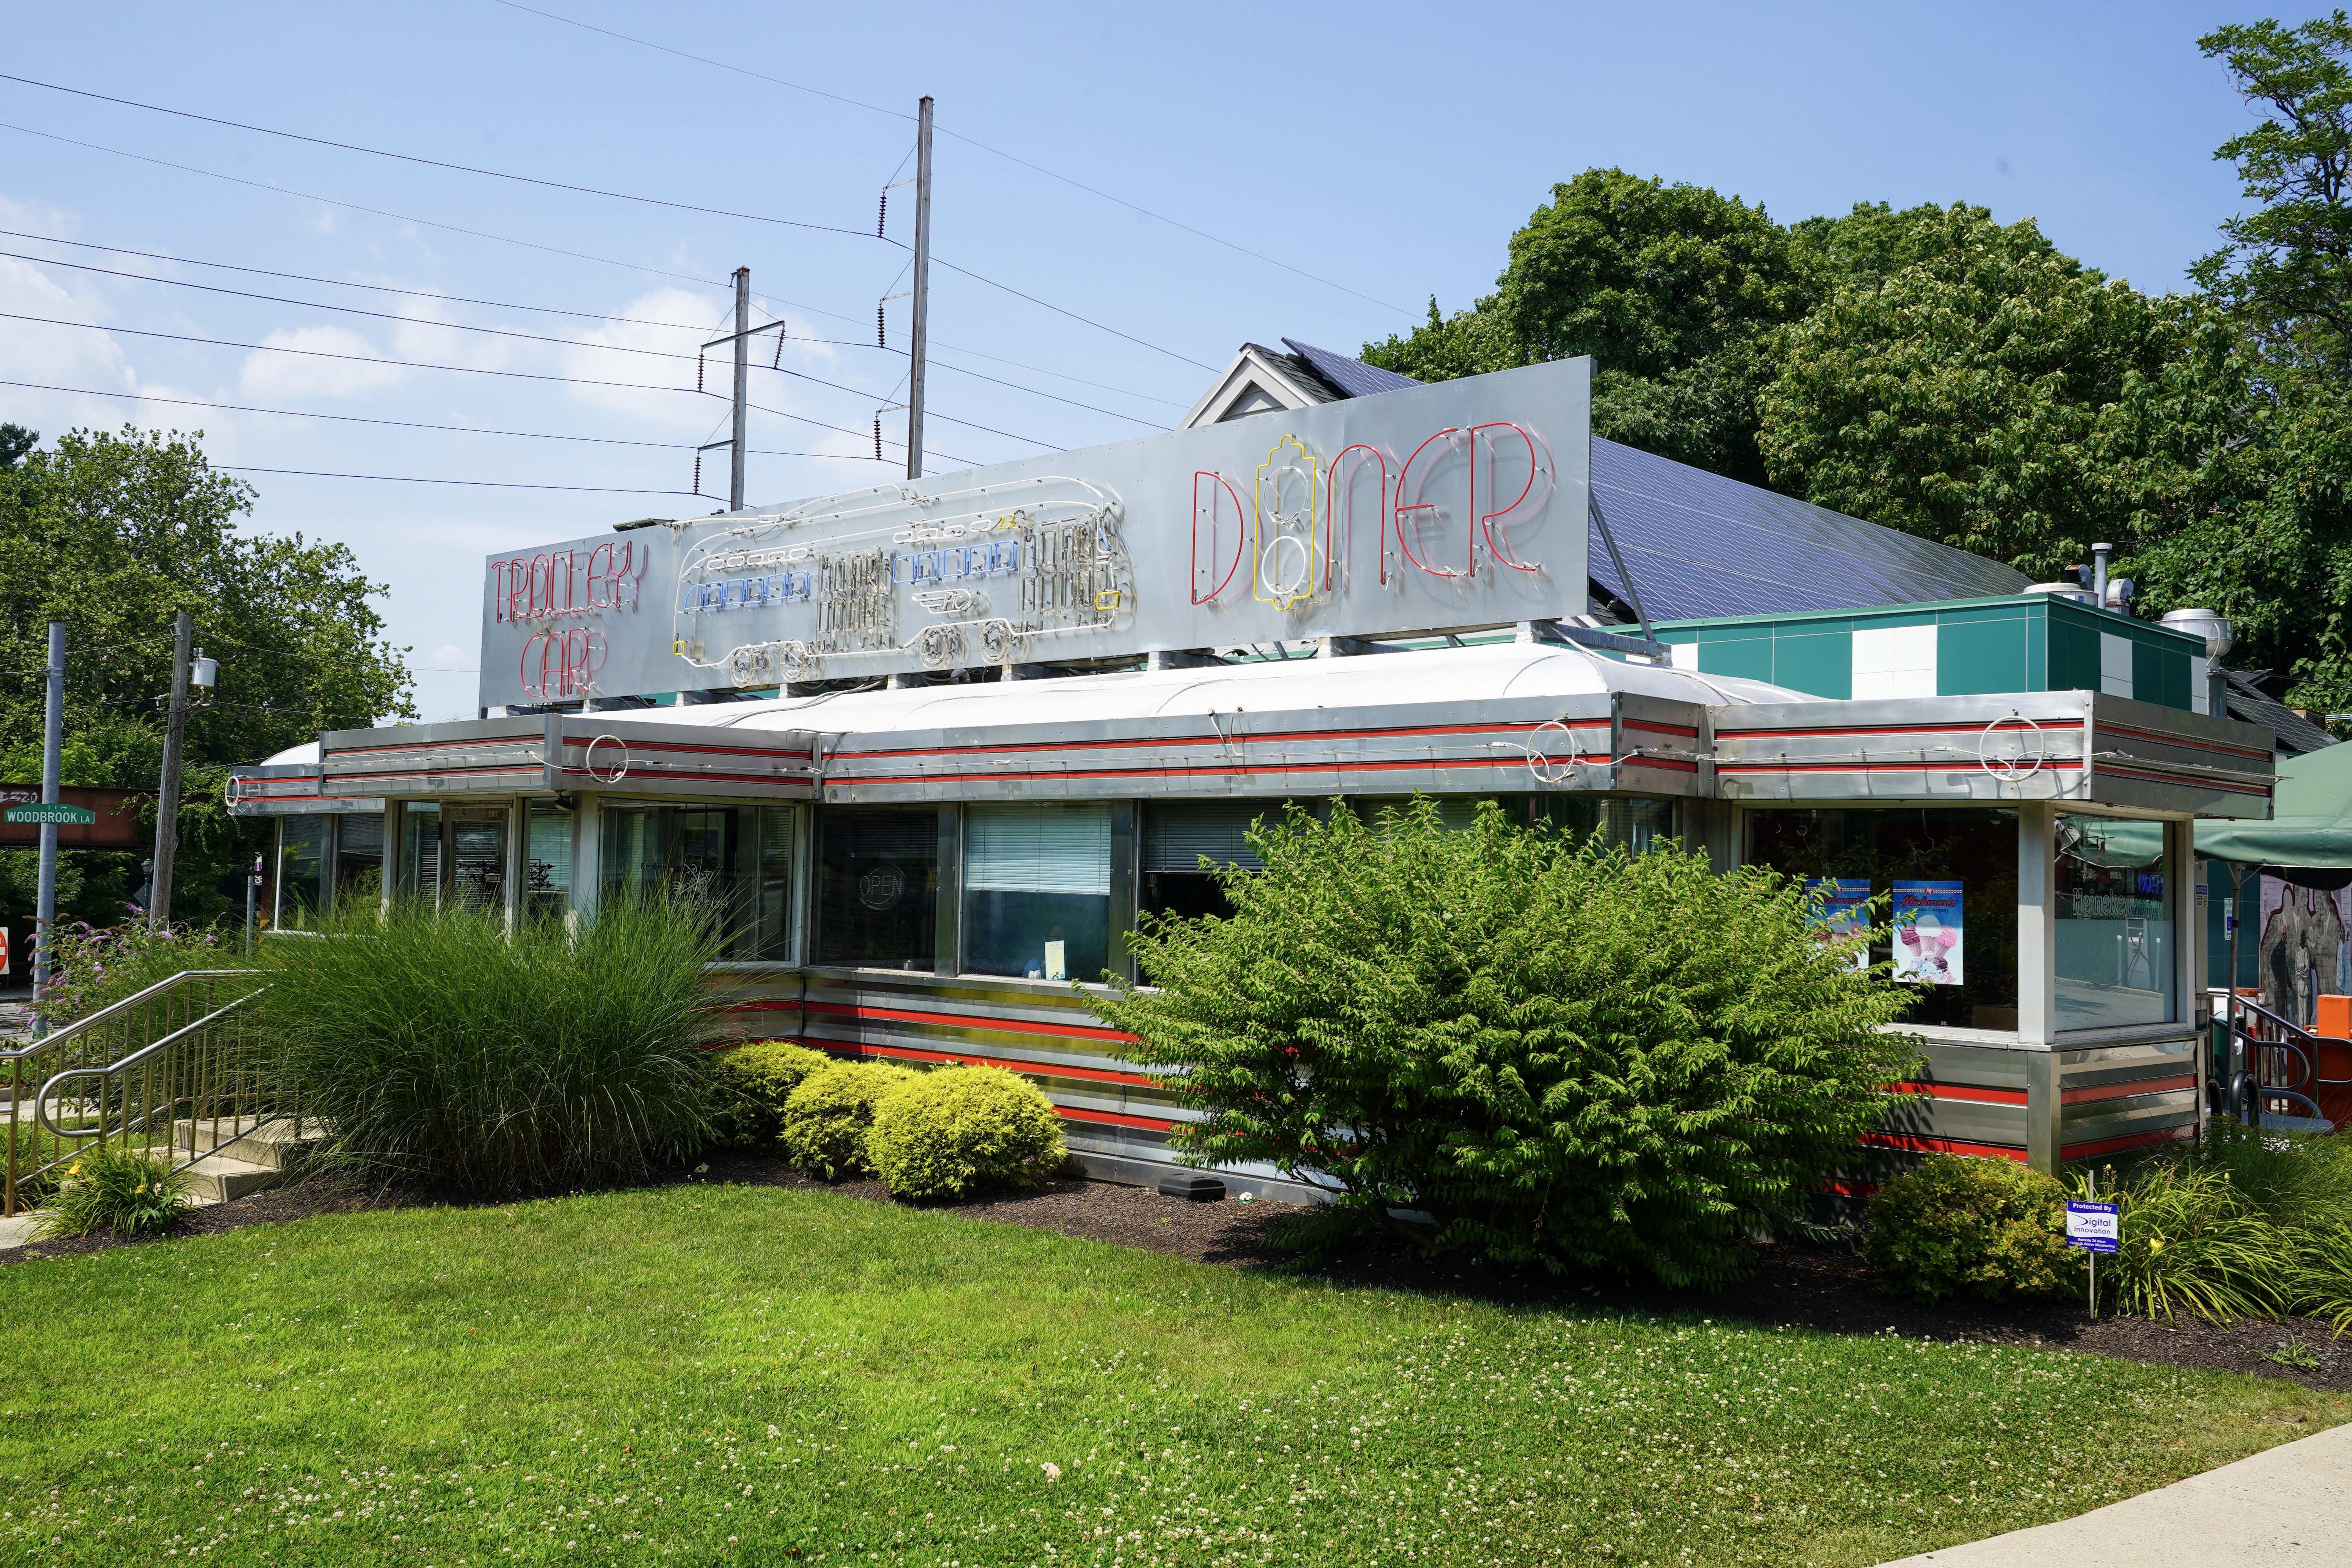 Trolley Car Diner In Mount Airy Closing In October – CBS Philly